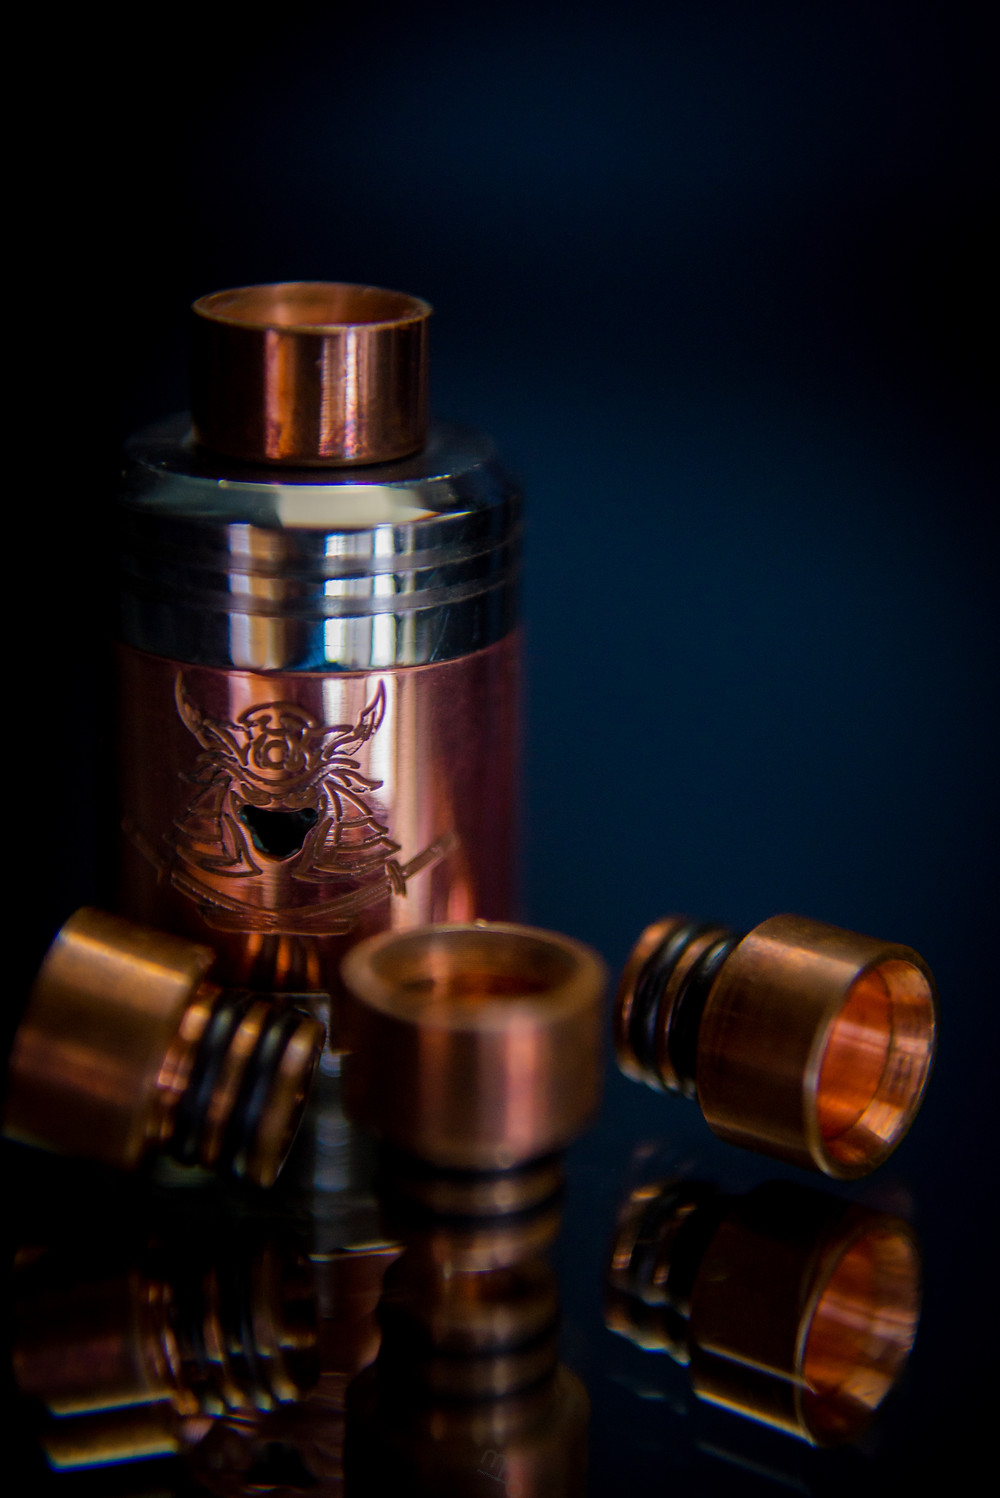 Samurai Competition V2 with Copper Drip Tip